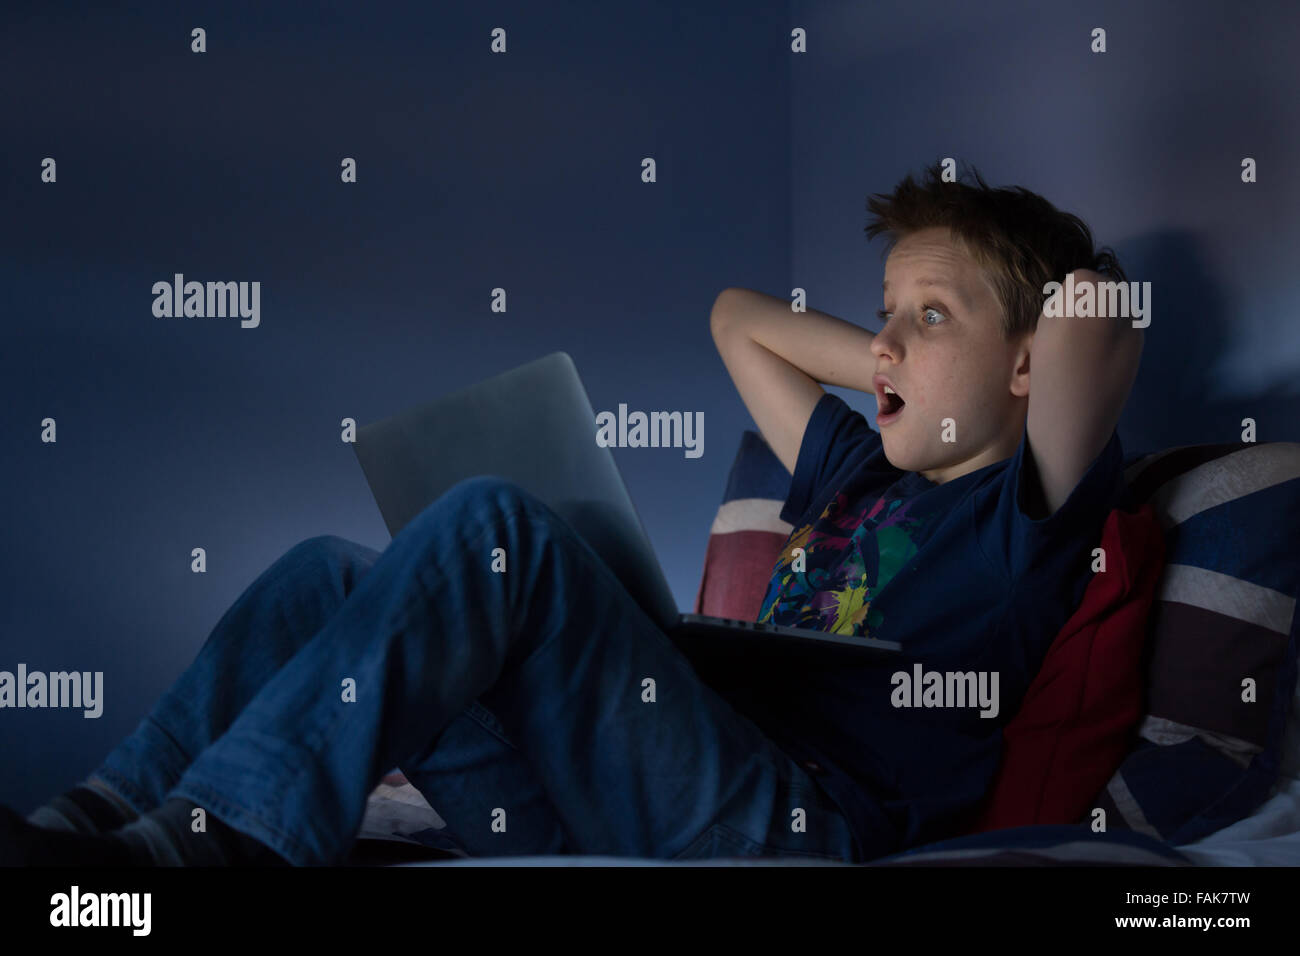 A boy sitting up late in his bedroom looking at the internet shocked at what he is seeing - Stock Image